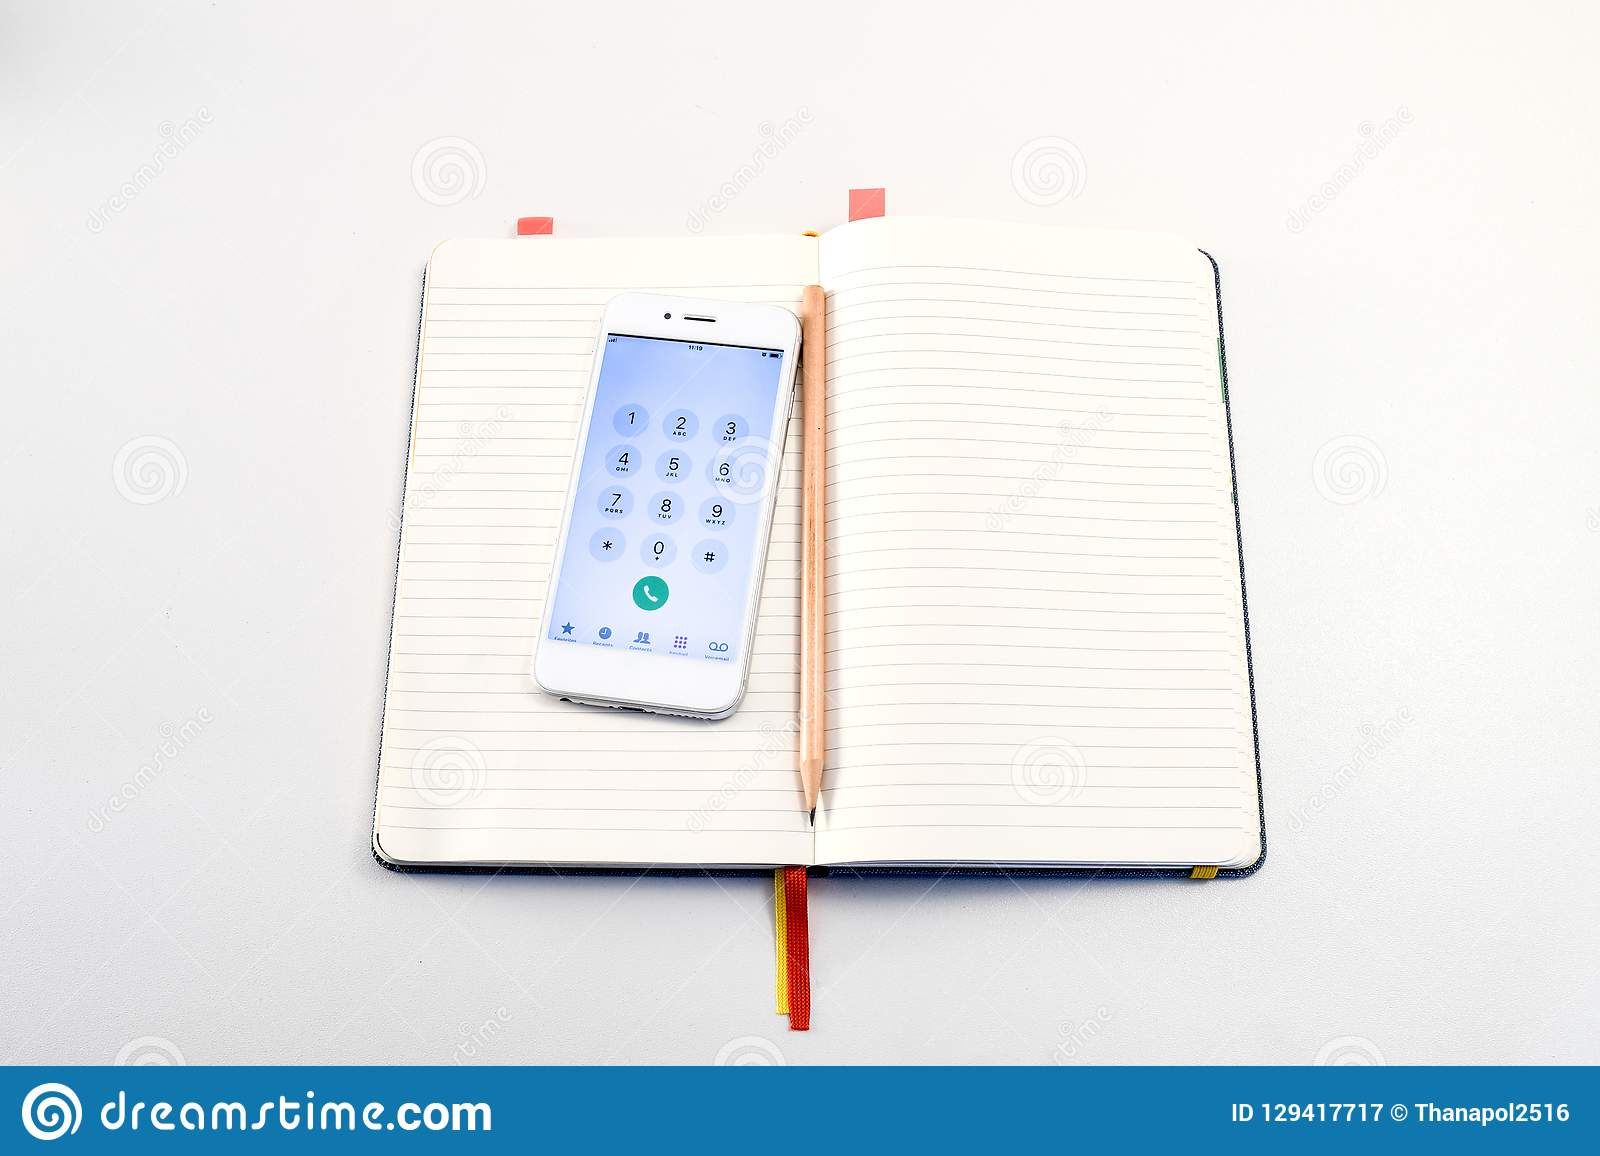 Smartphone and pencil in the book on the white table